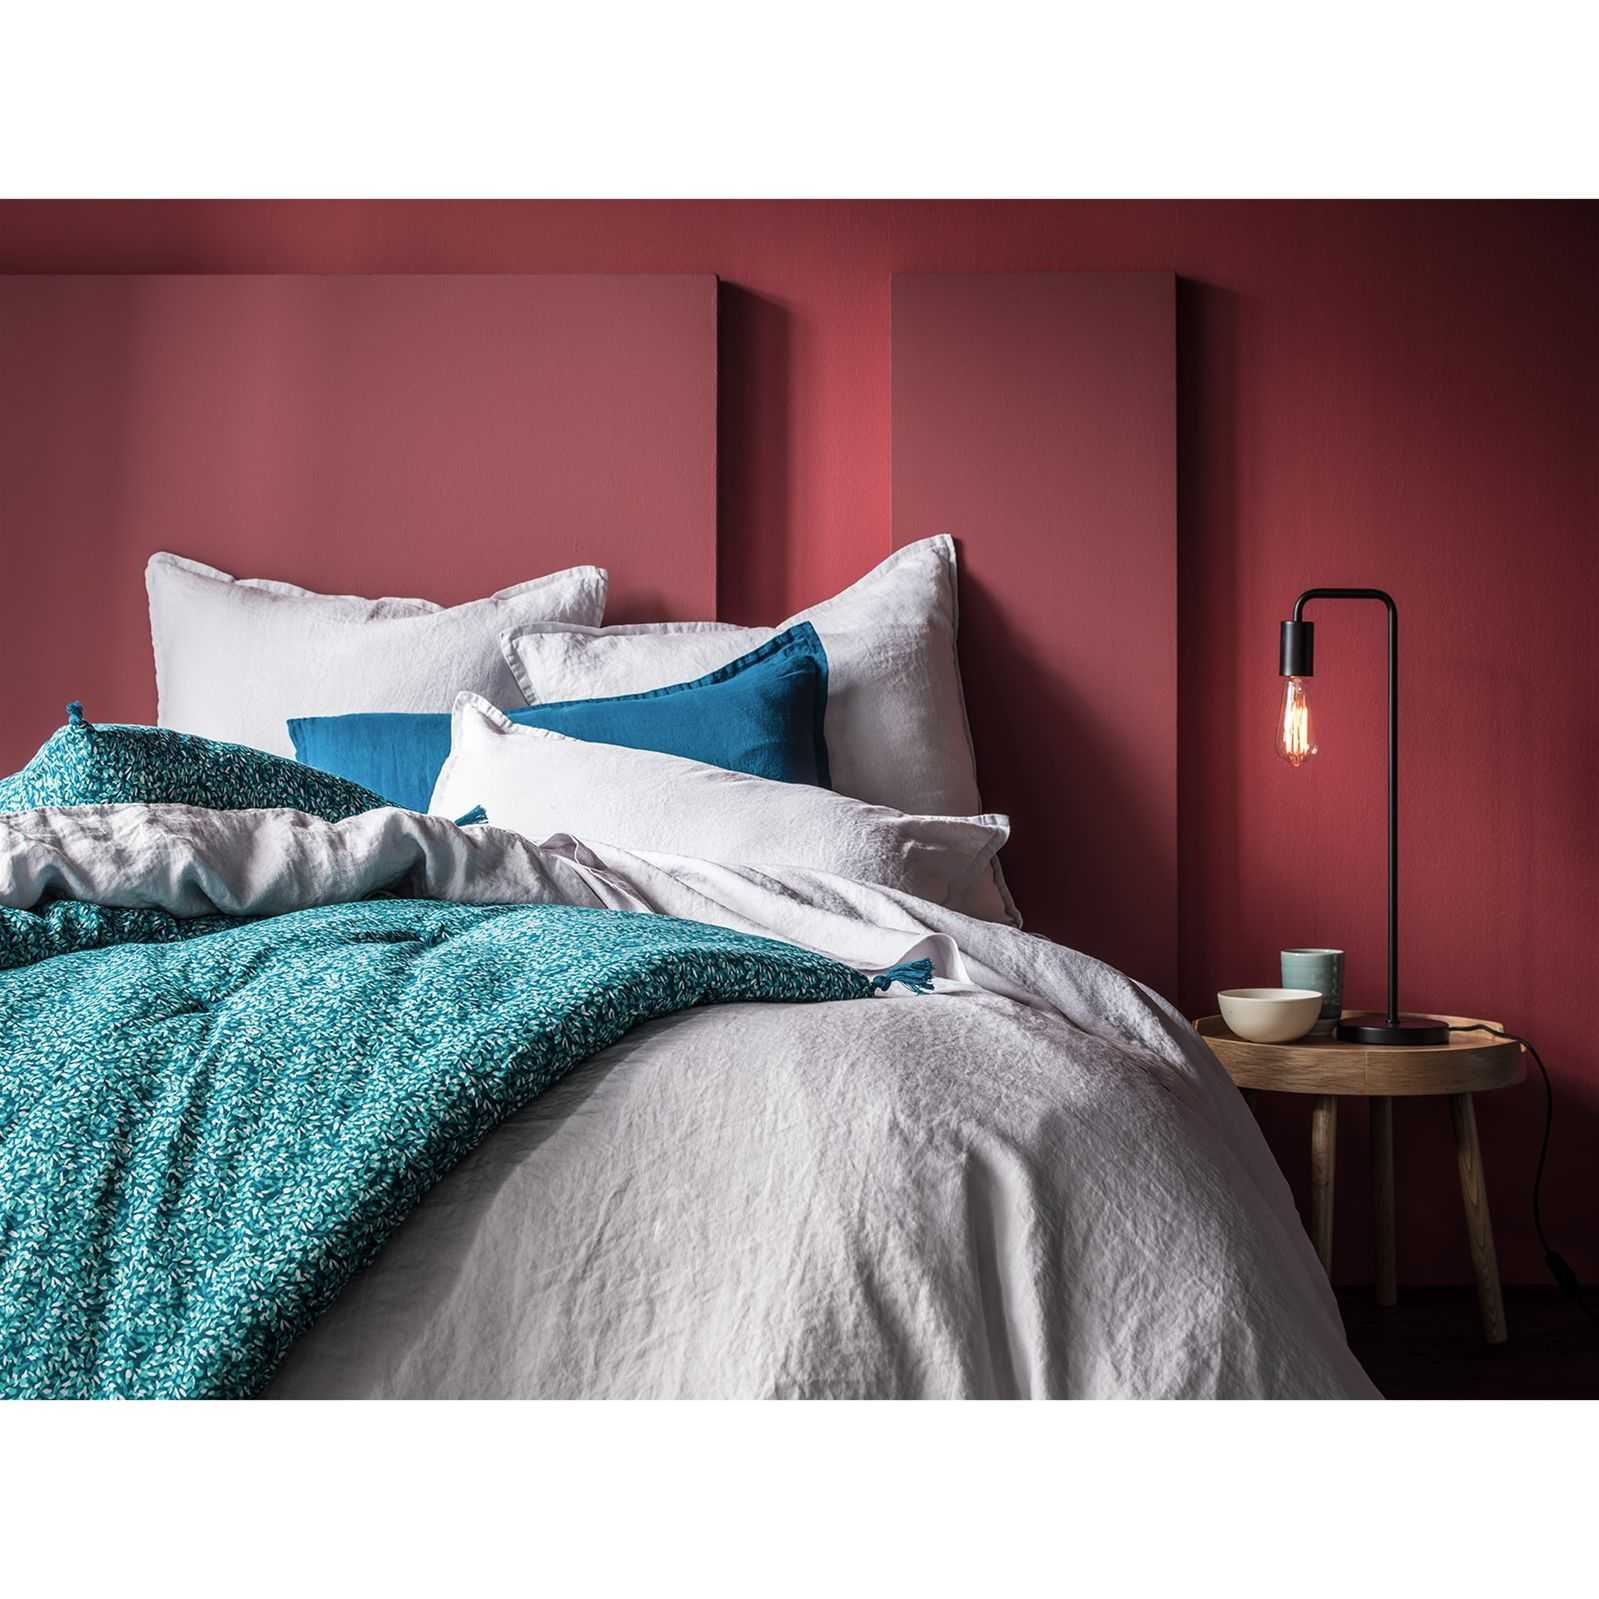 blanc cerise mille et une feuilles edredon avec housse bleu canard brandalley. Black Bedroom Furniture Sets. Home Design Ideas